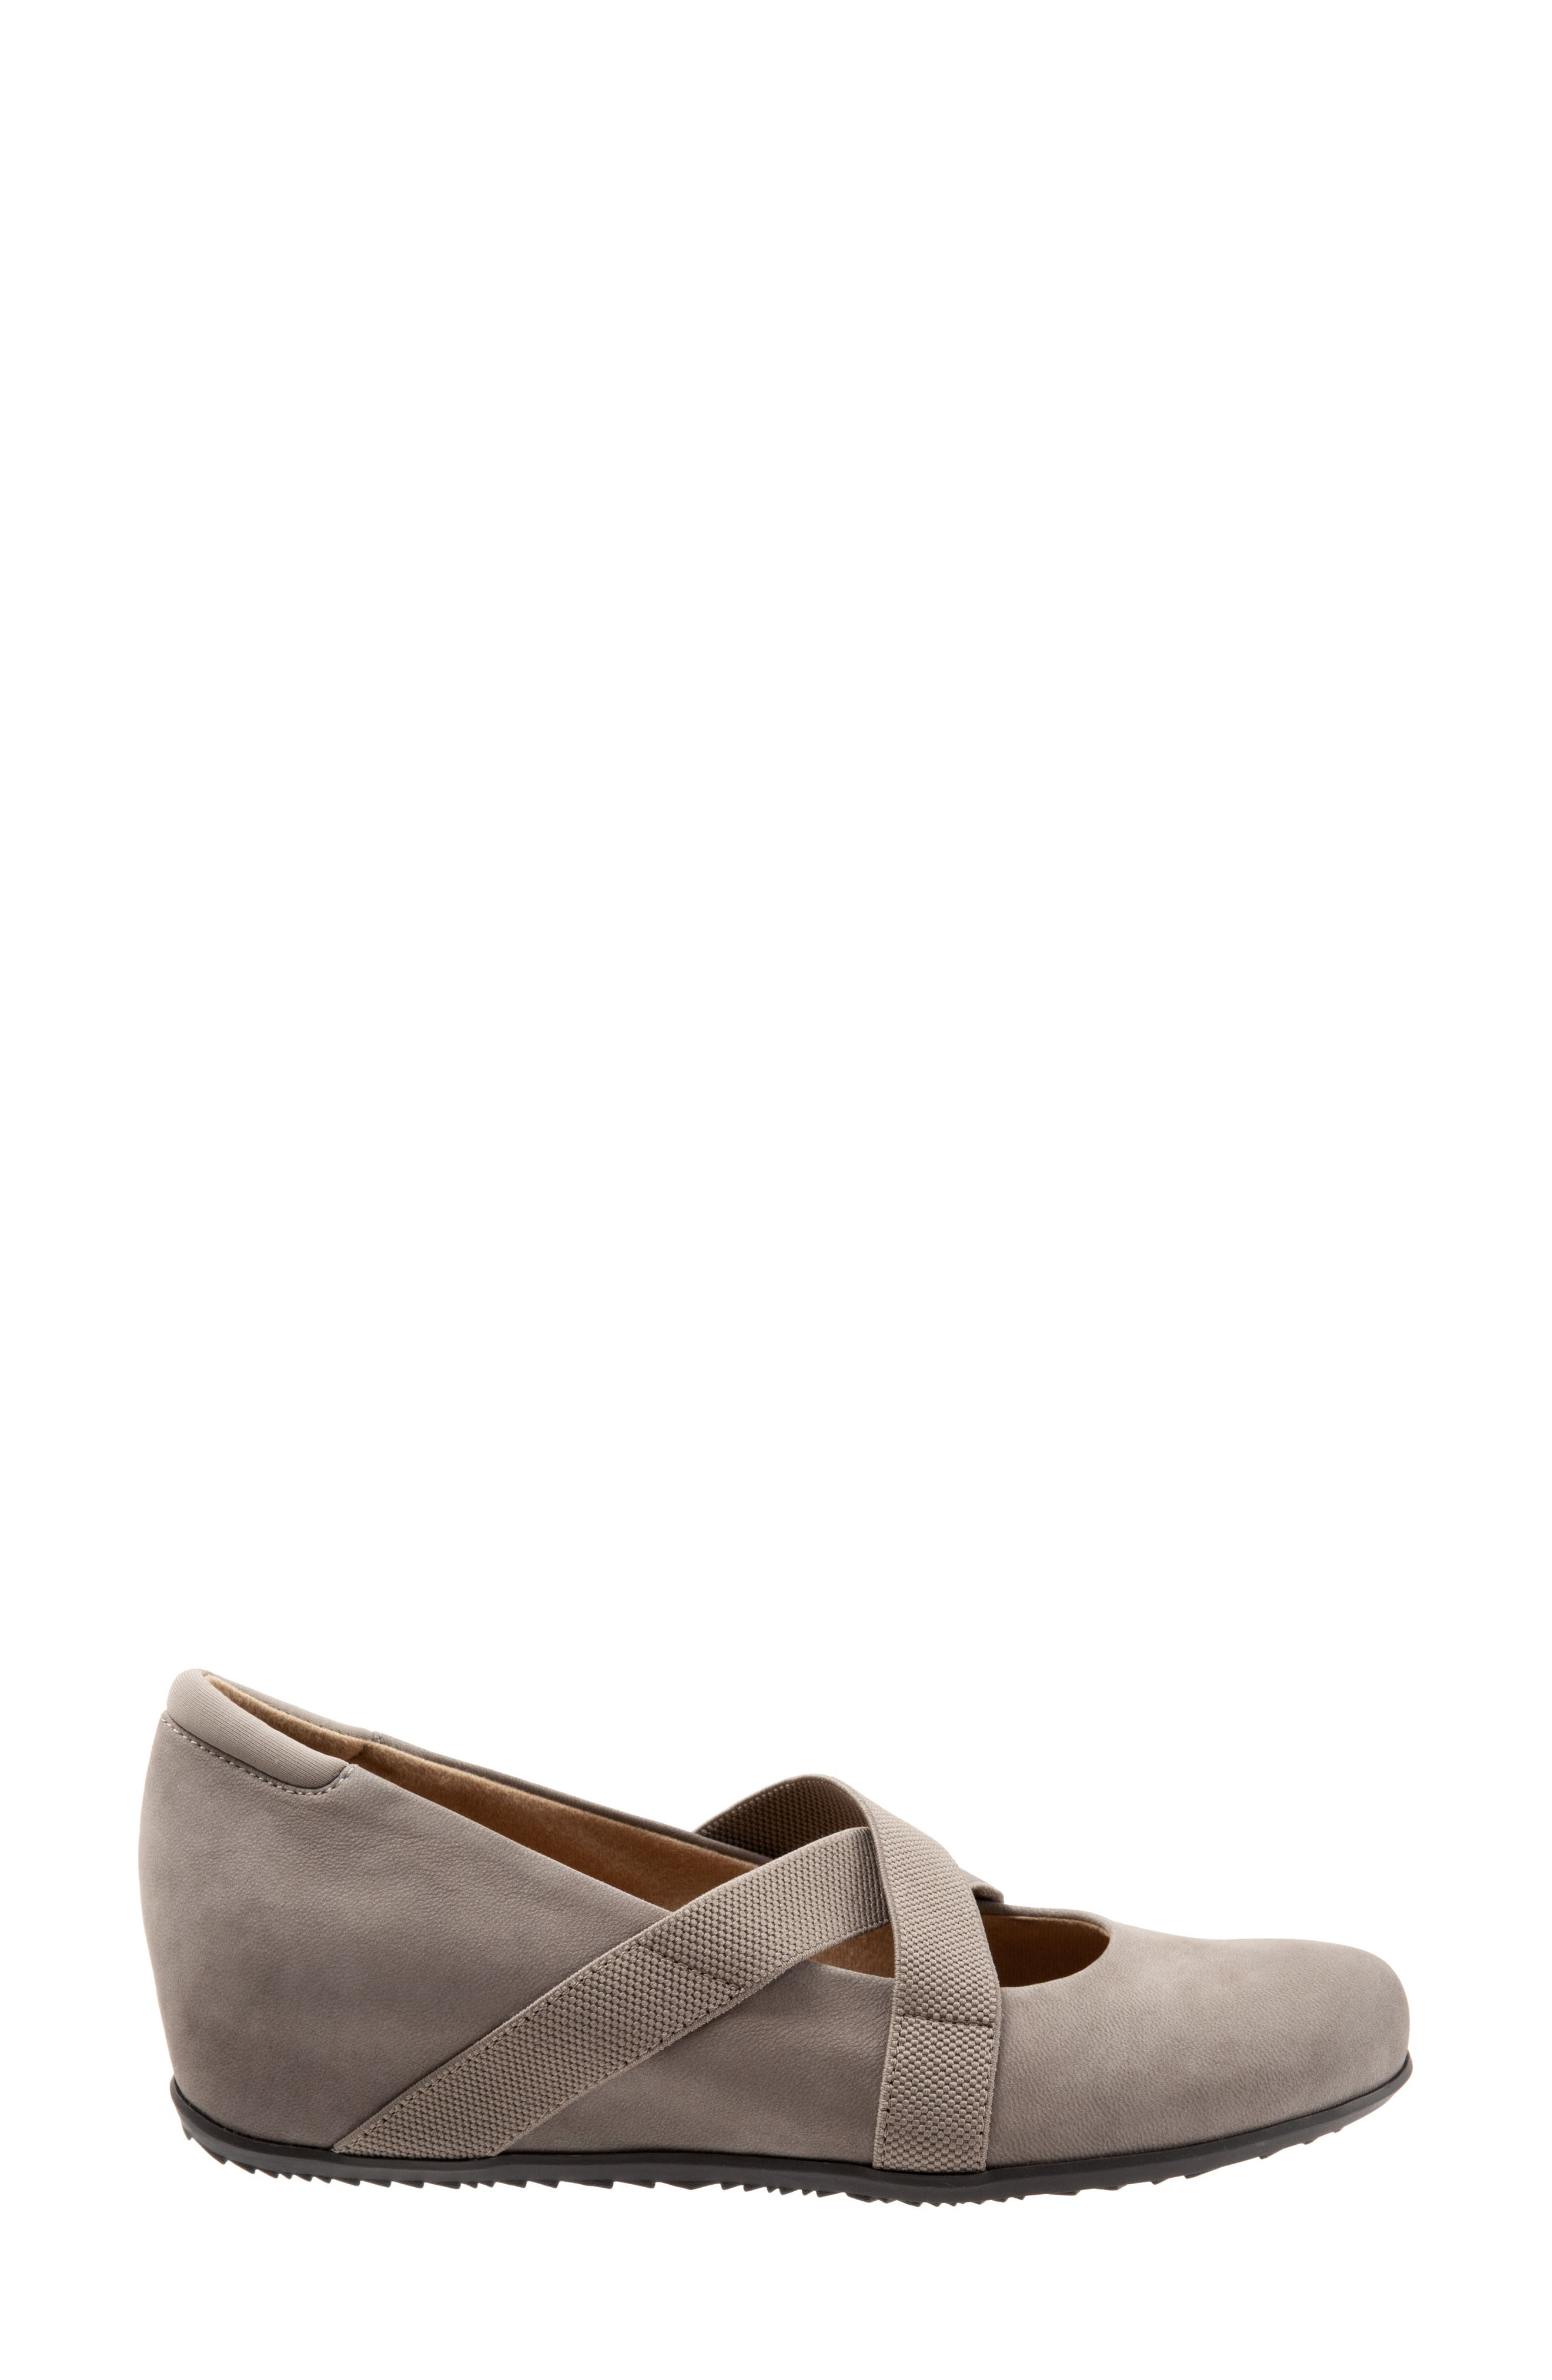 SOFTWALK<SUP>®</SUP>, Waverly Mary Jane Wedge, Alternate thumbnail 3, color, TAUPE LEATHER